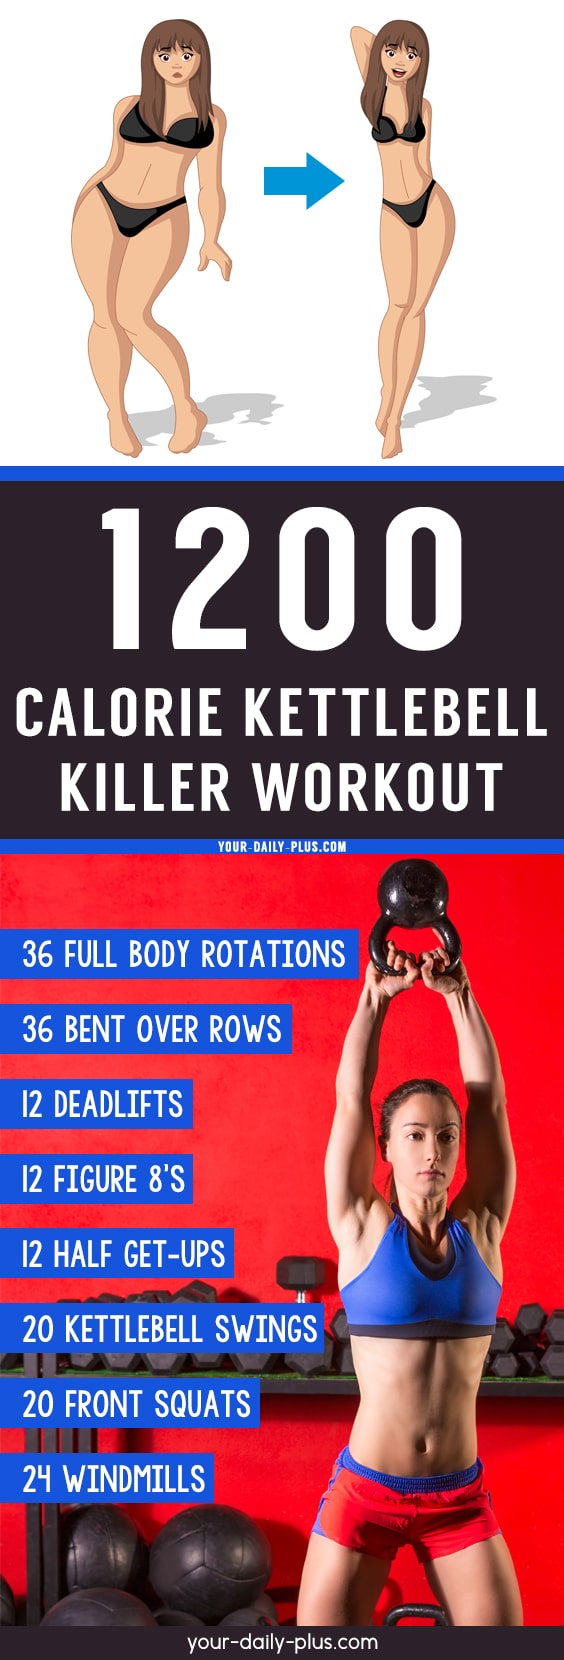 Kettlebell Killer Workout